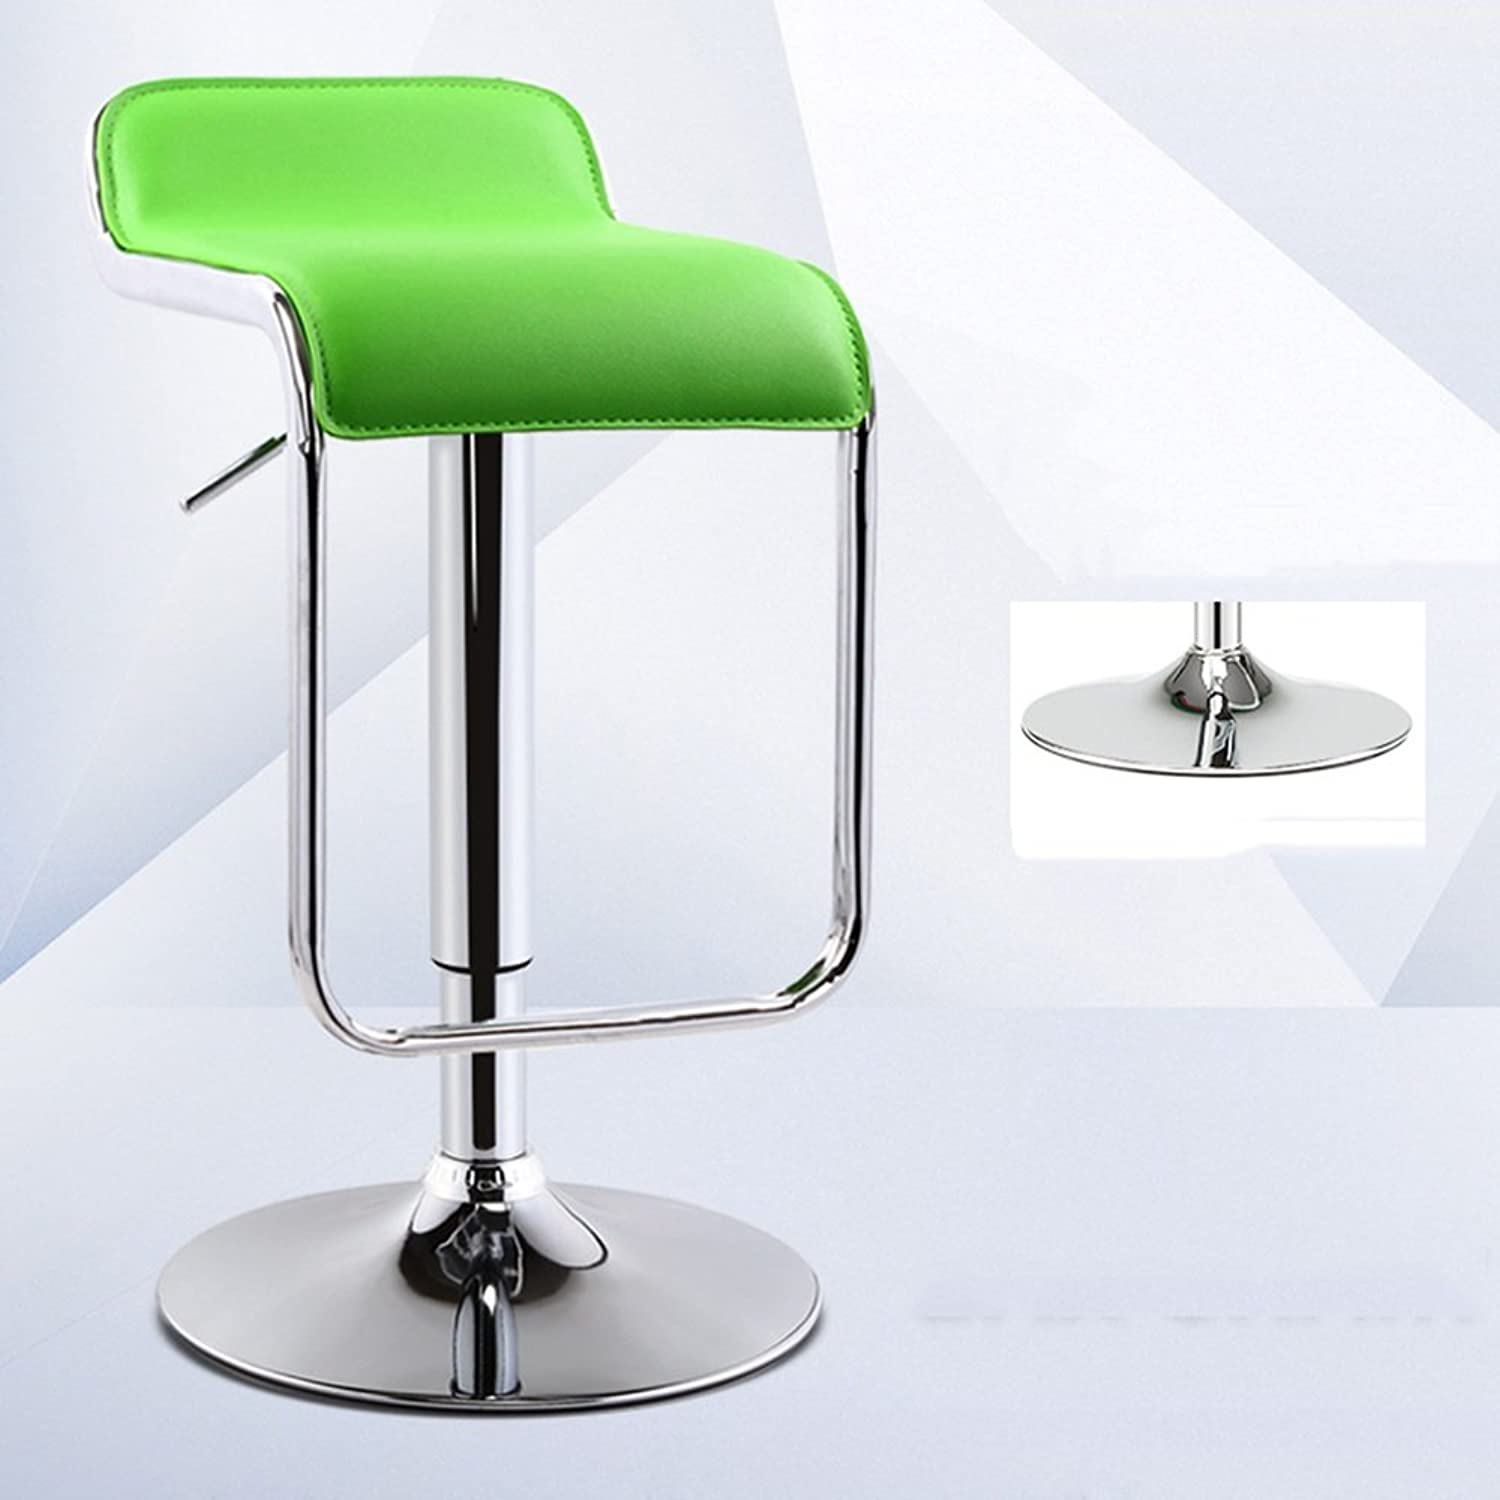 LHA Barstools 360 Degree Swivel Chair Lift Chair PU Chair Height Adjustable Bar Furniture (color   Green)